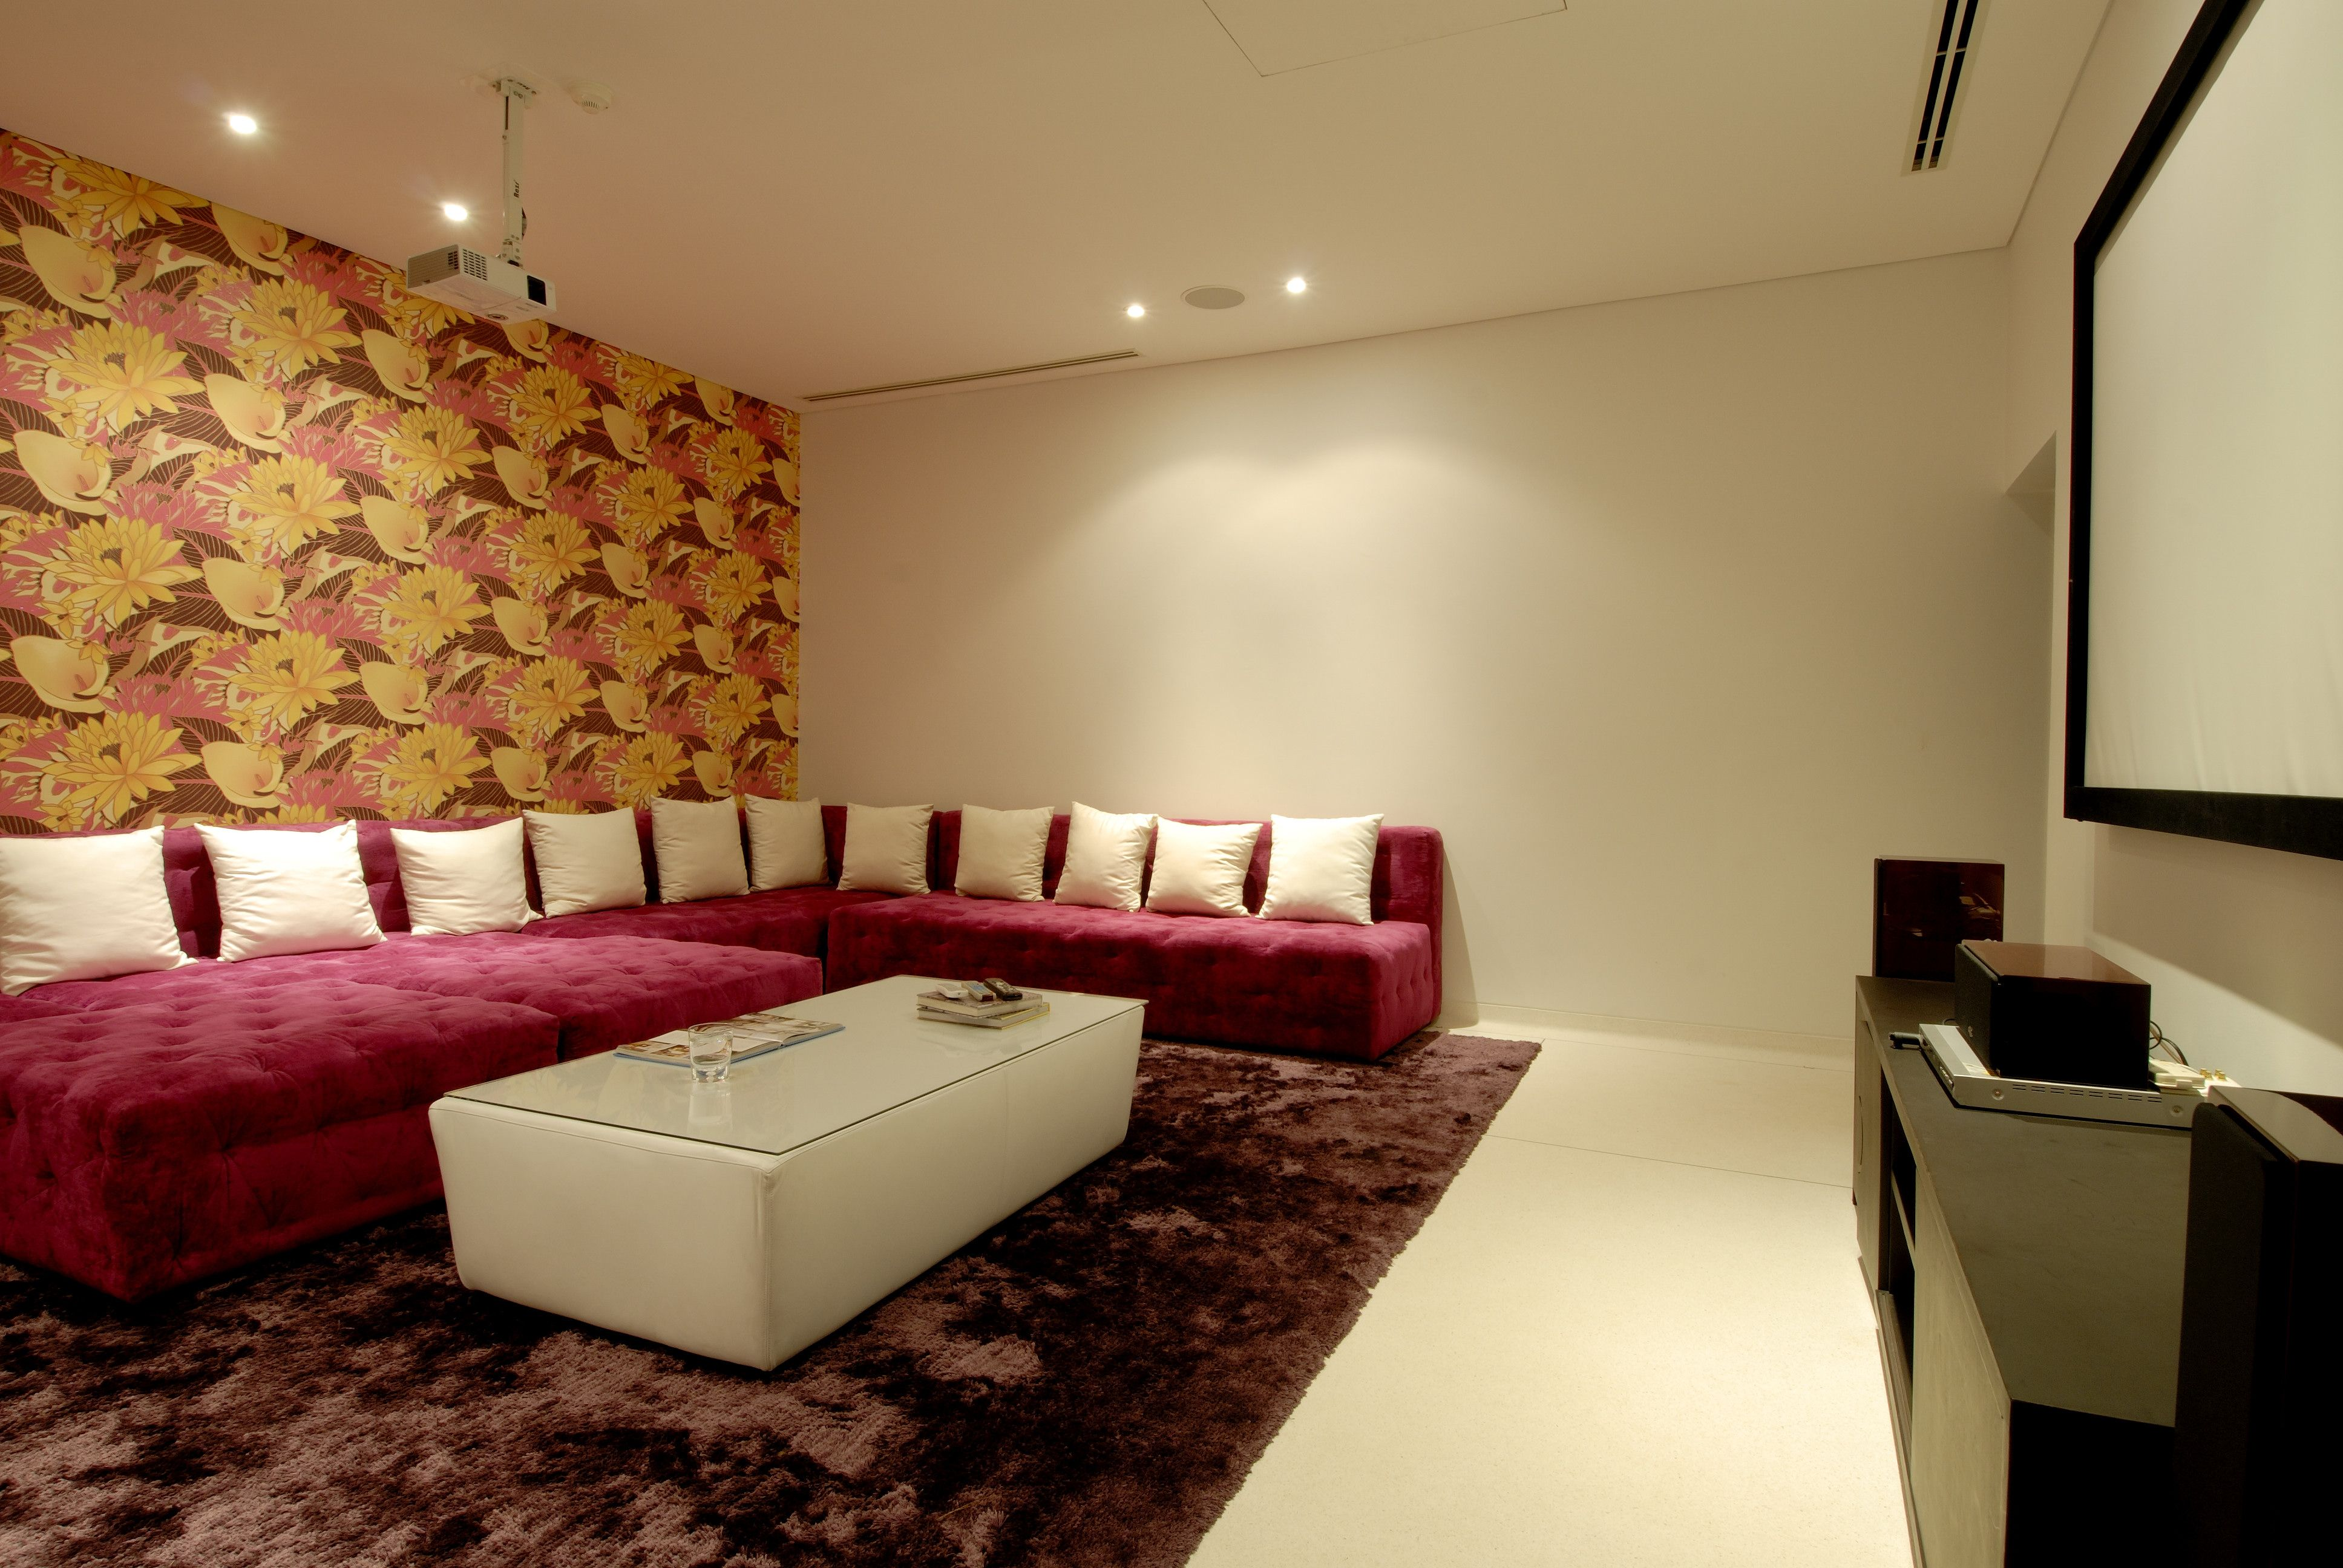 Wallpaper Installation Cost Average Wallpaper Prices Home Theater Seating Home Theater Installation Home Theater